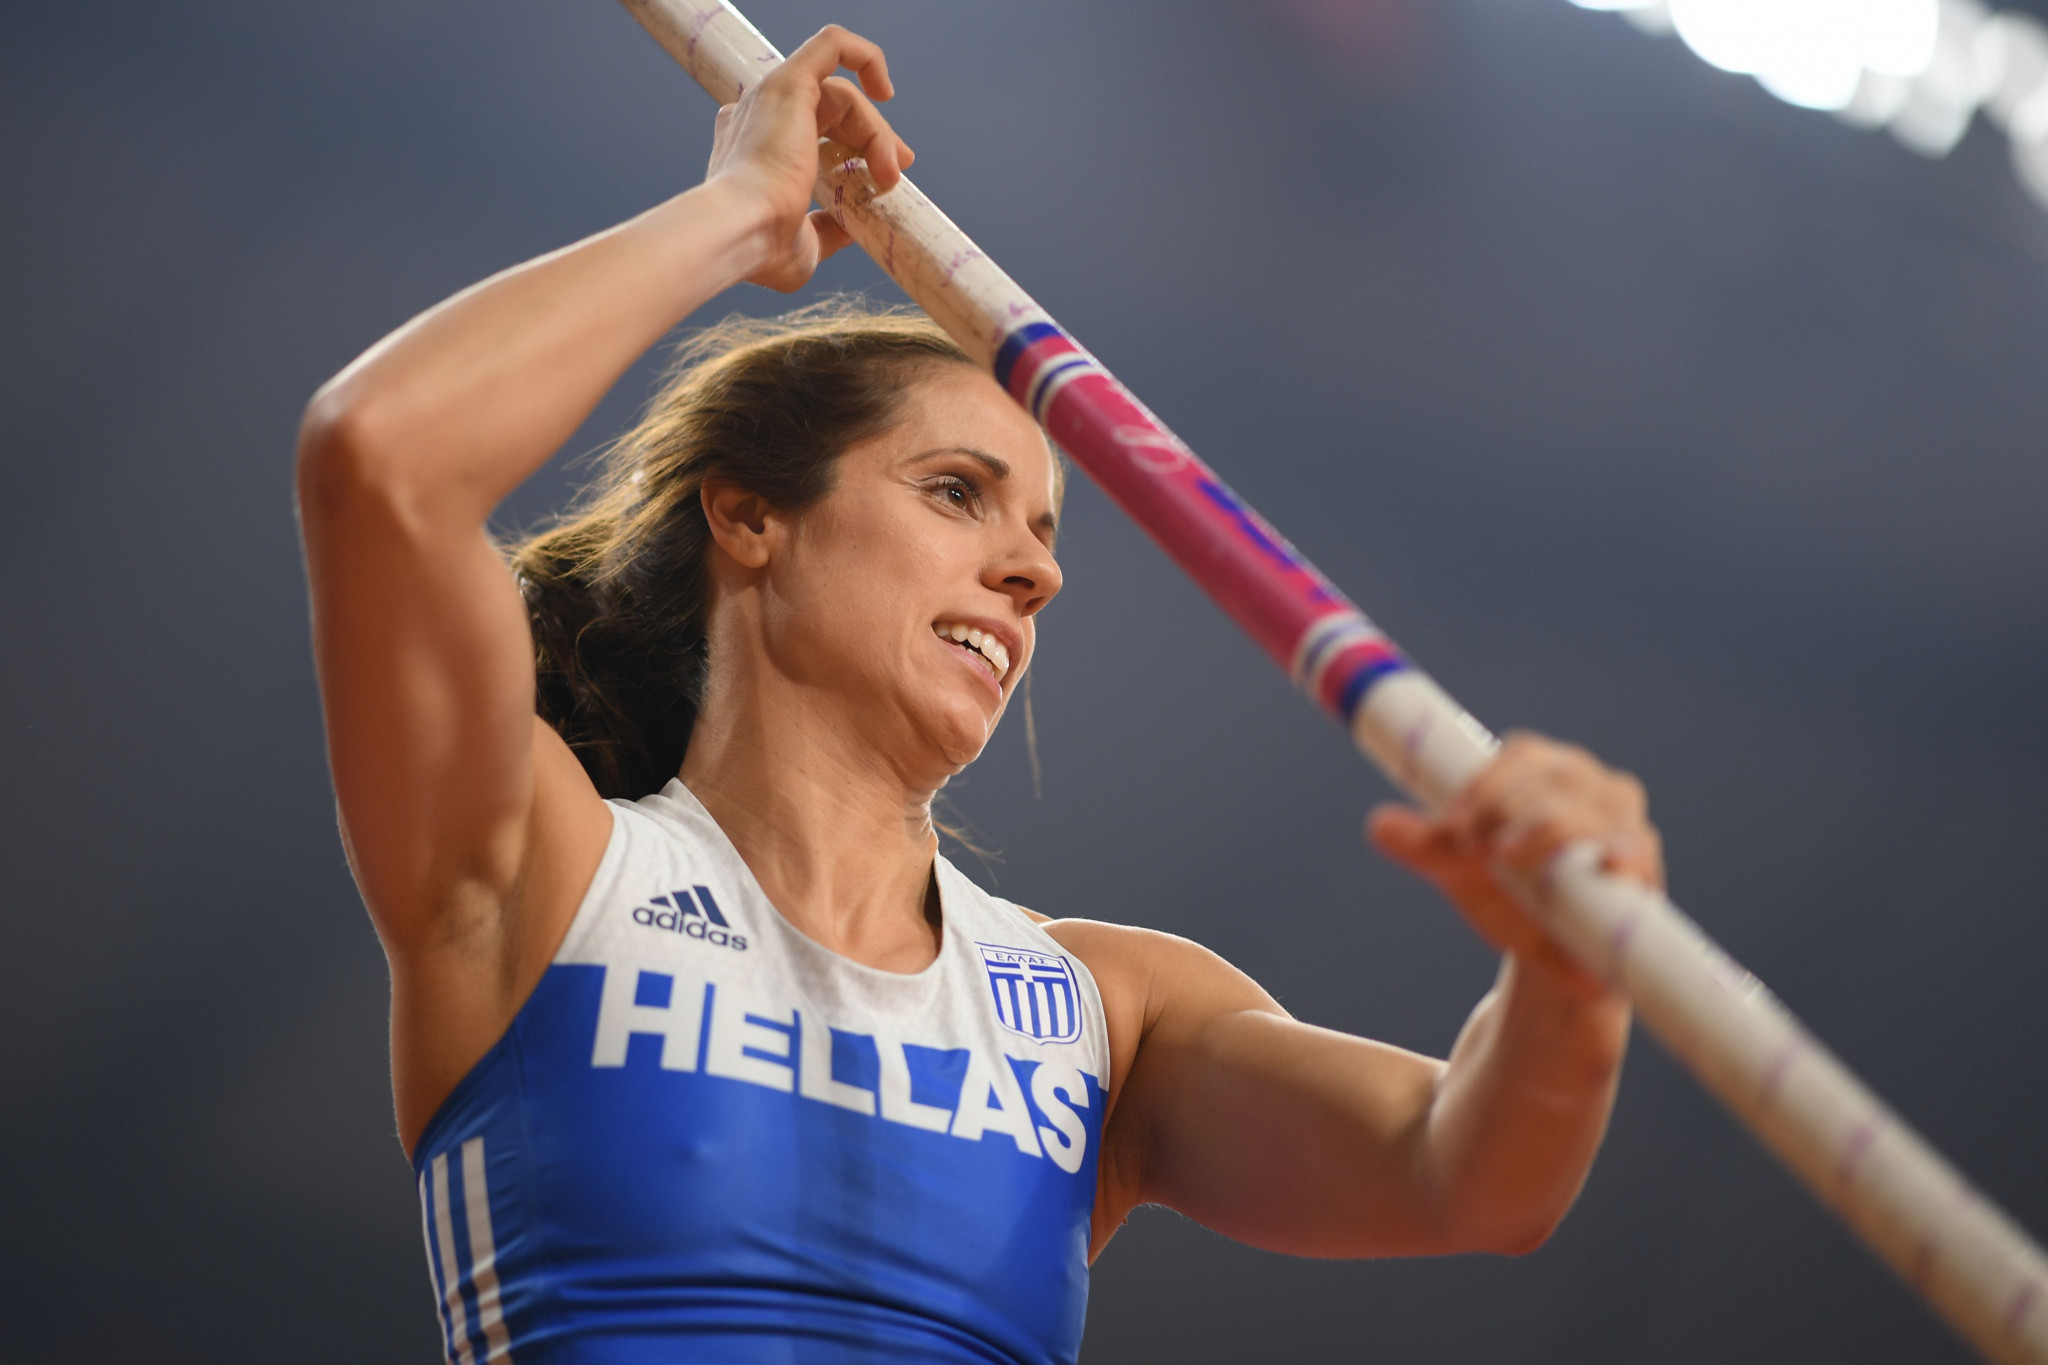 Olympic pole vault champion Katerina Stefanidi supports the staging of Tokyo 2020 this year ©Getty Images